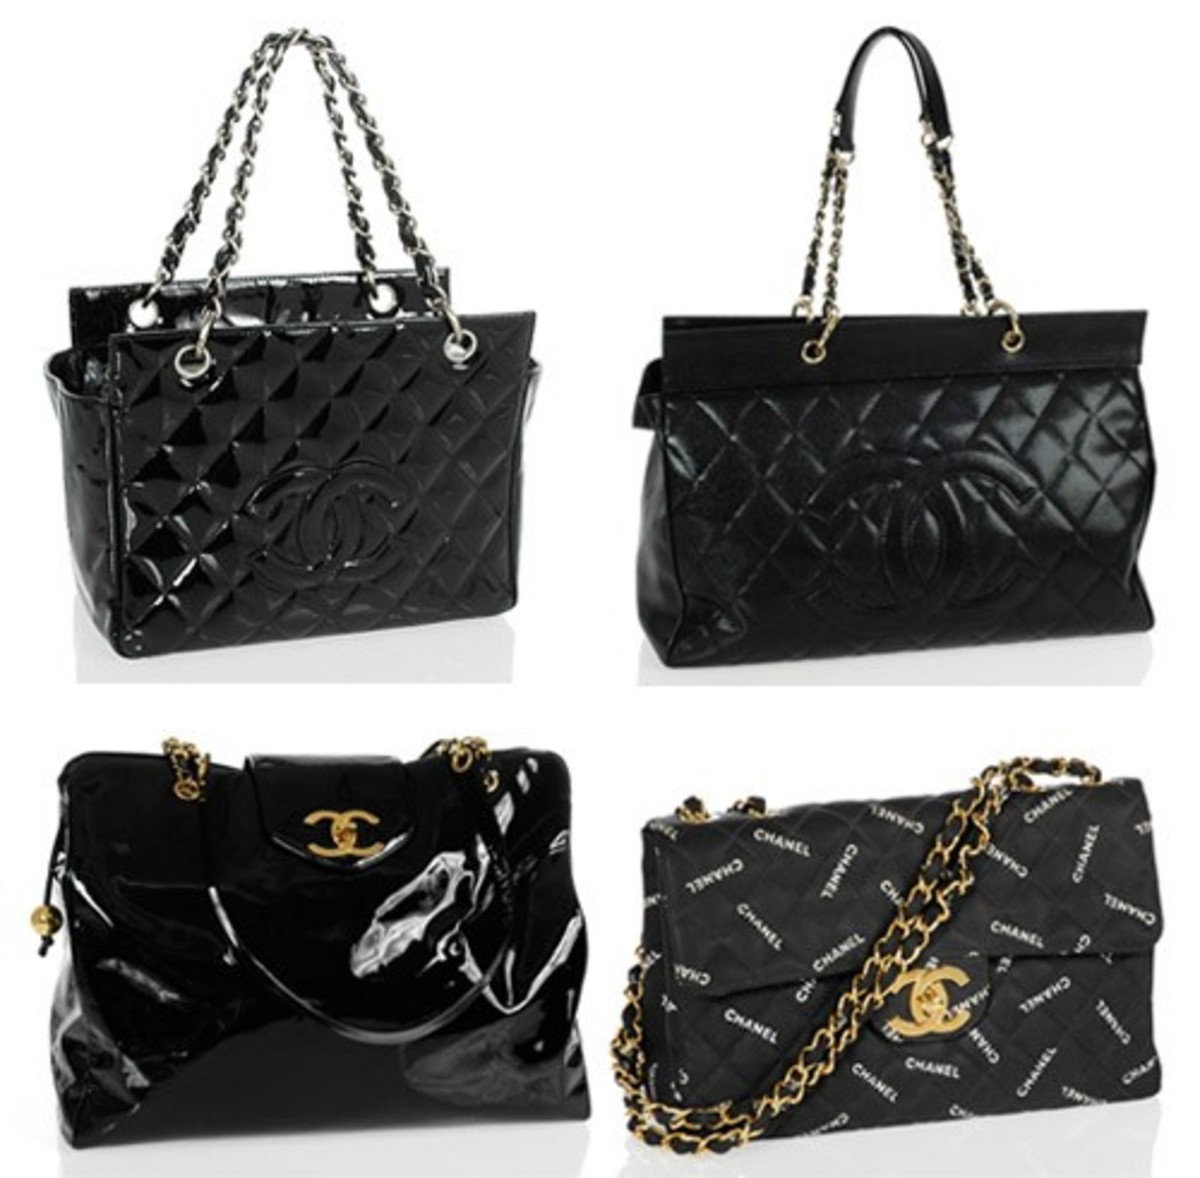 Portero.com, an online luxury auction site is taking bids for 200 vintage and classic quilted Chanel bags